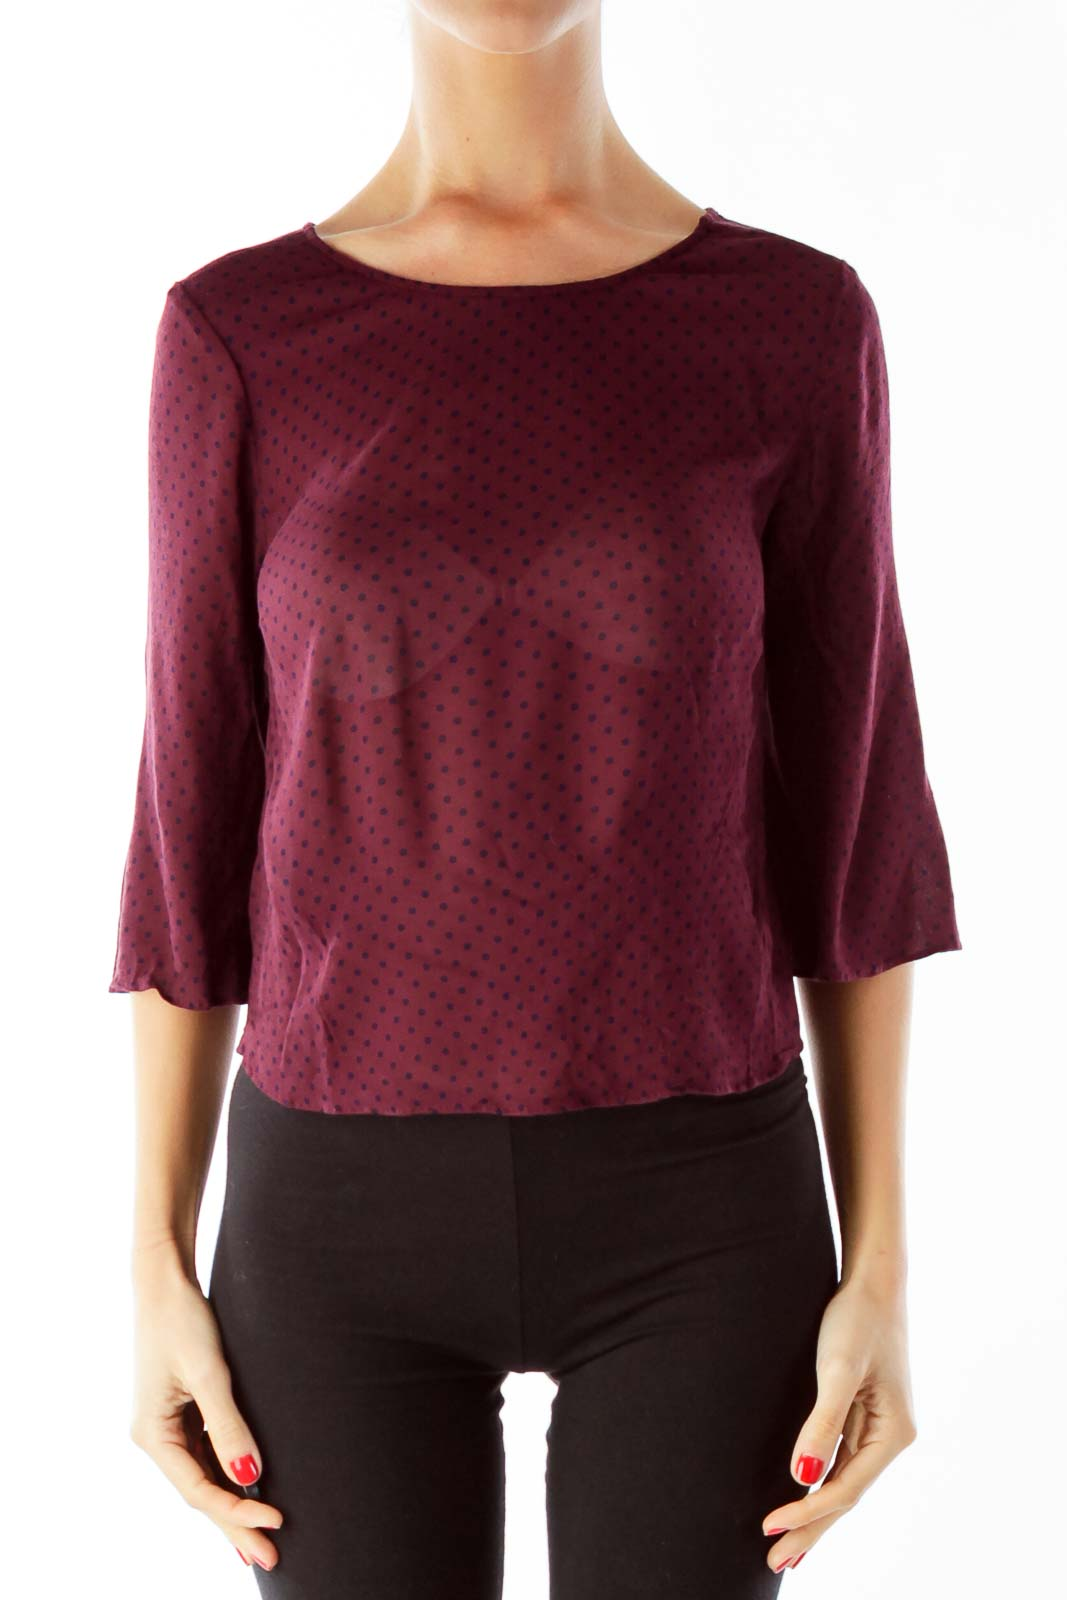 Mahogany Black Polka-Dotted Cropped Blouse Front